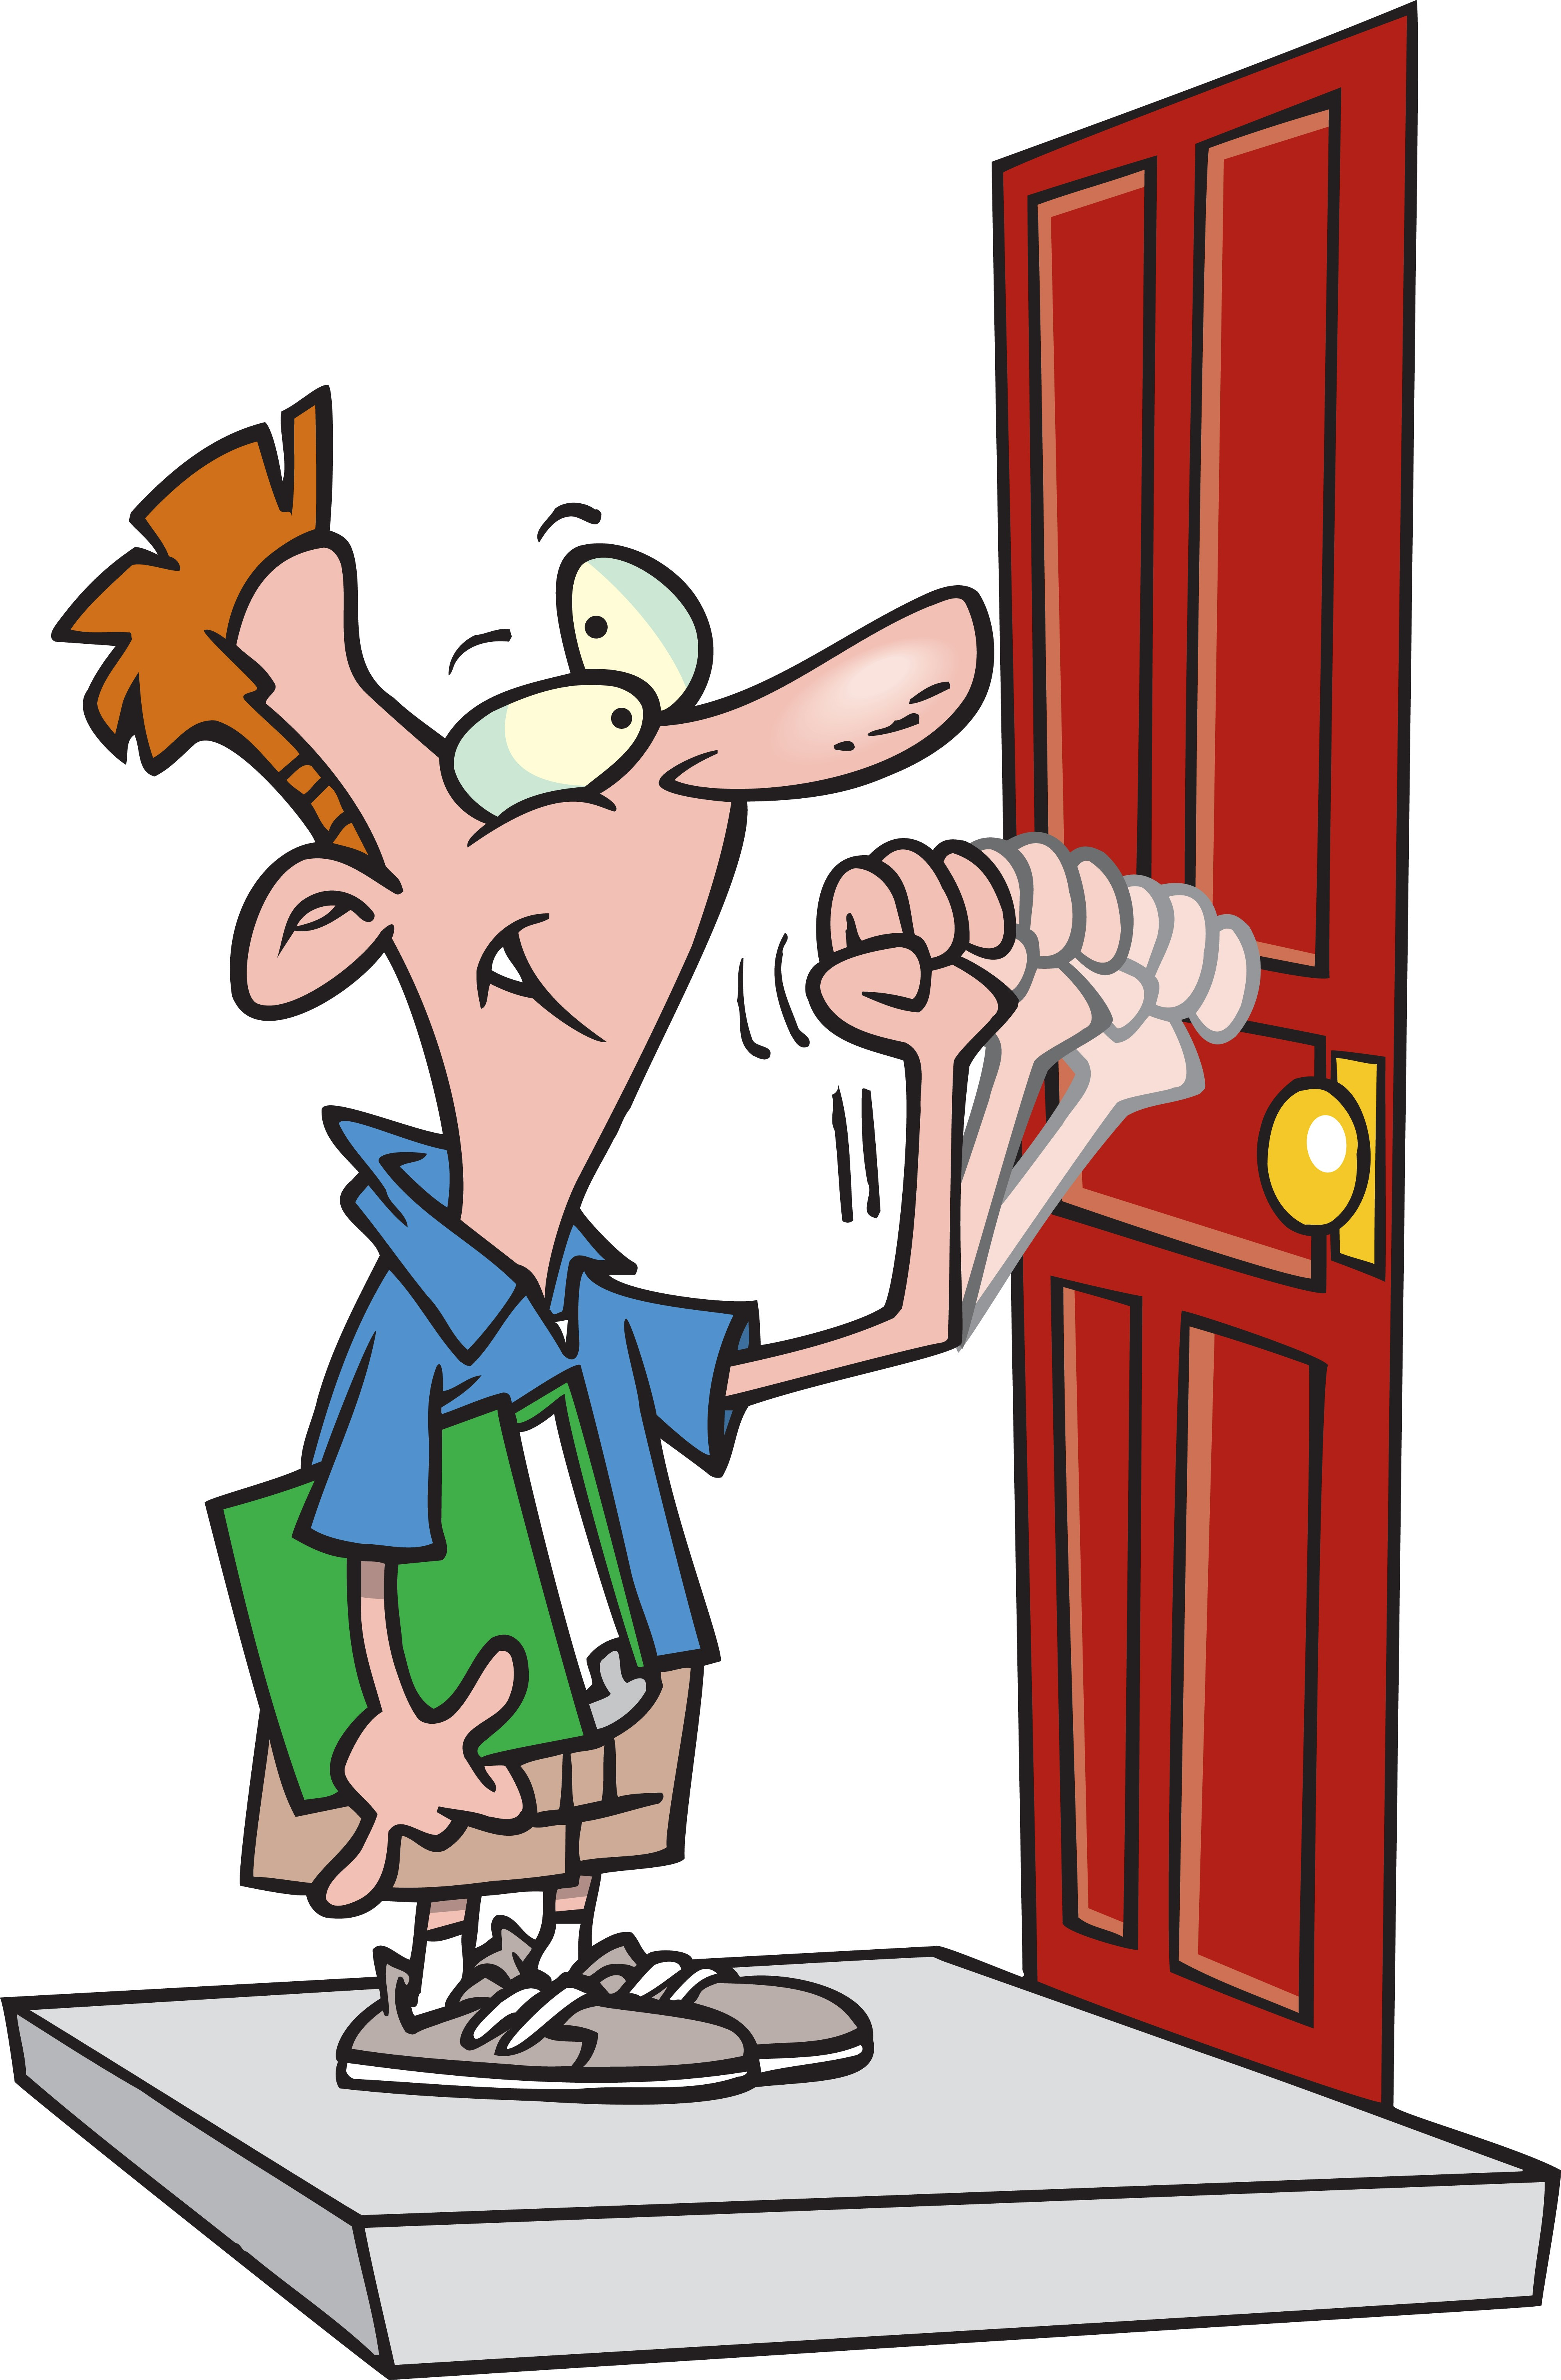 Knocking On A Door Clipart.